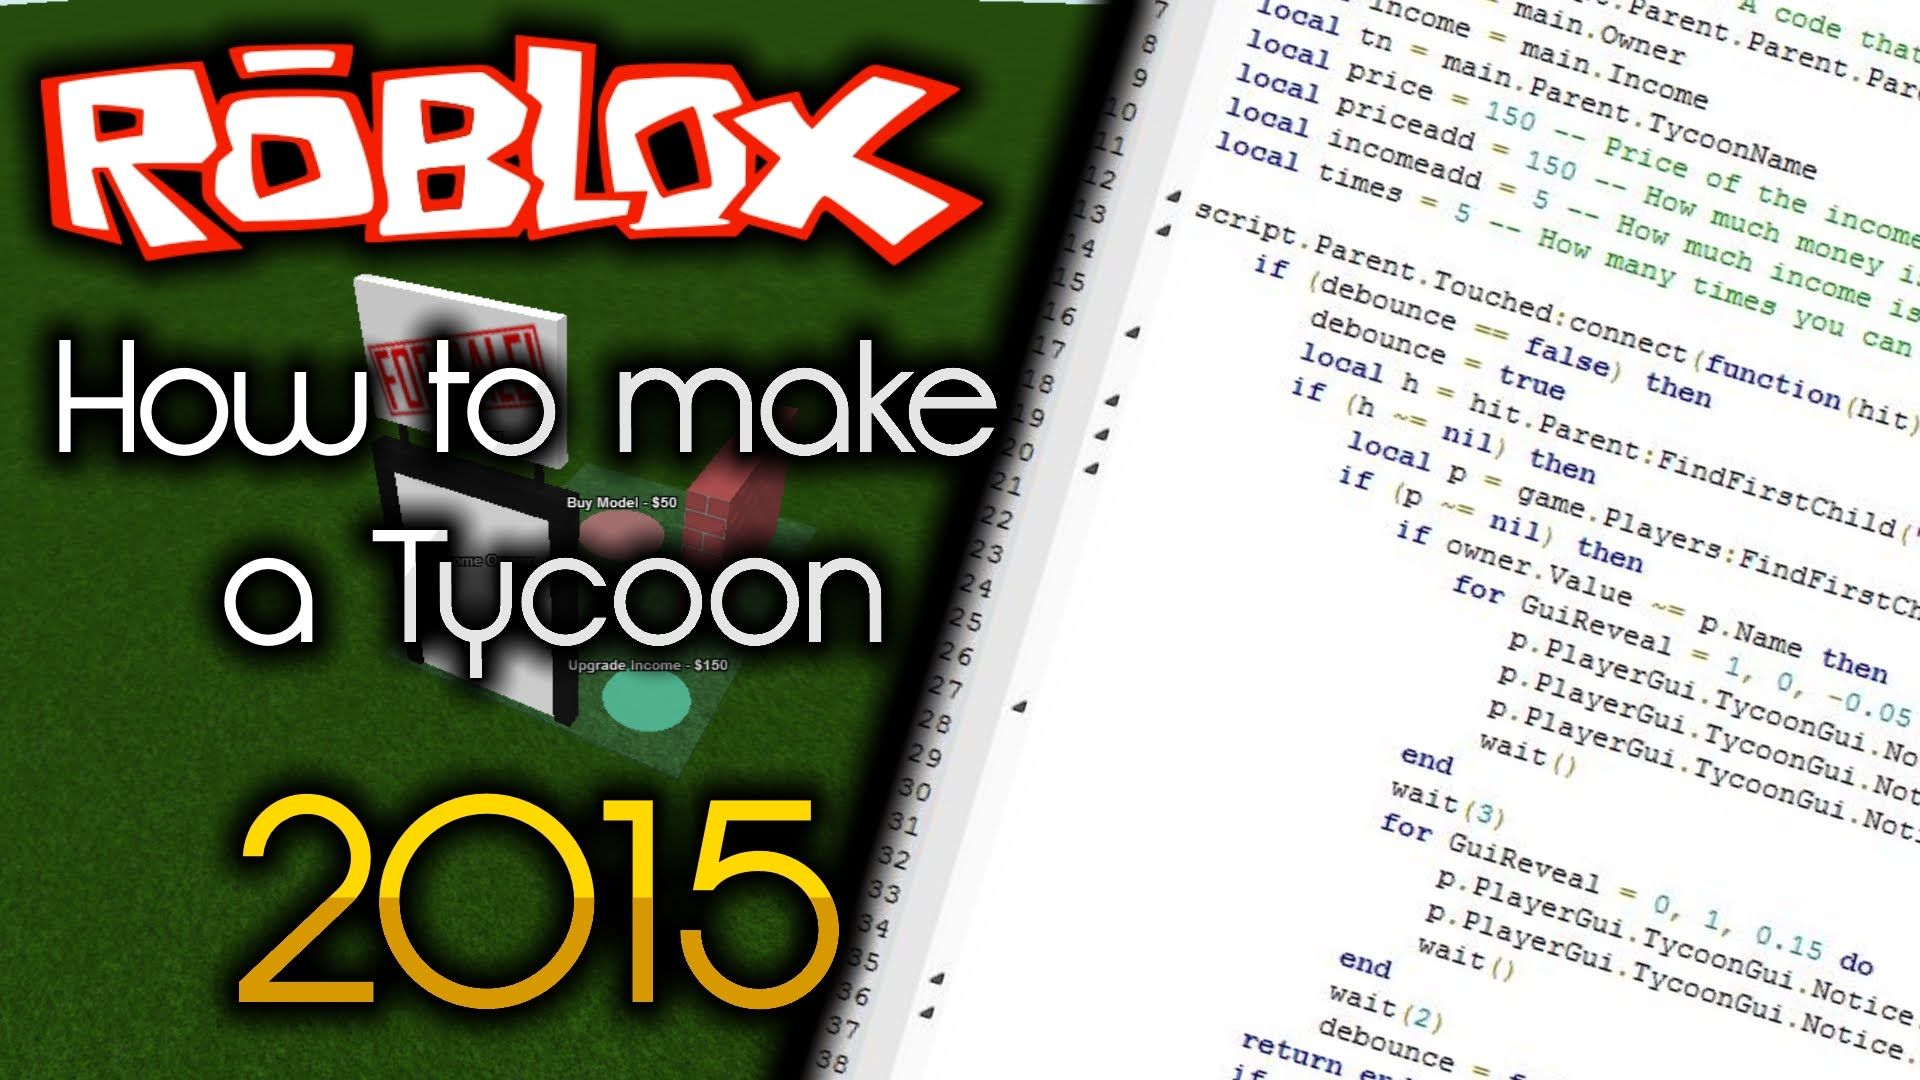 Awesome Roblox How To Make A Tycoon 2015 Comprehensive Tutorial